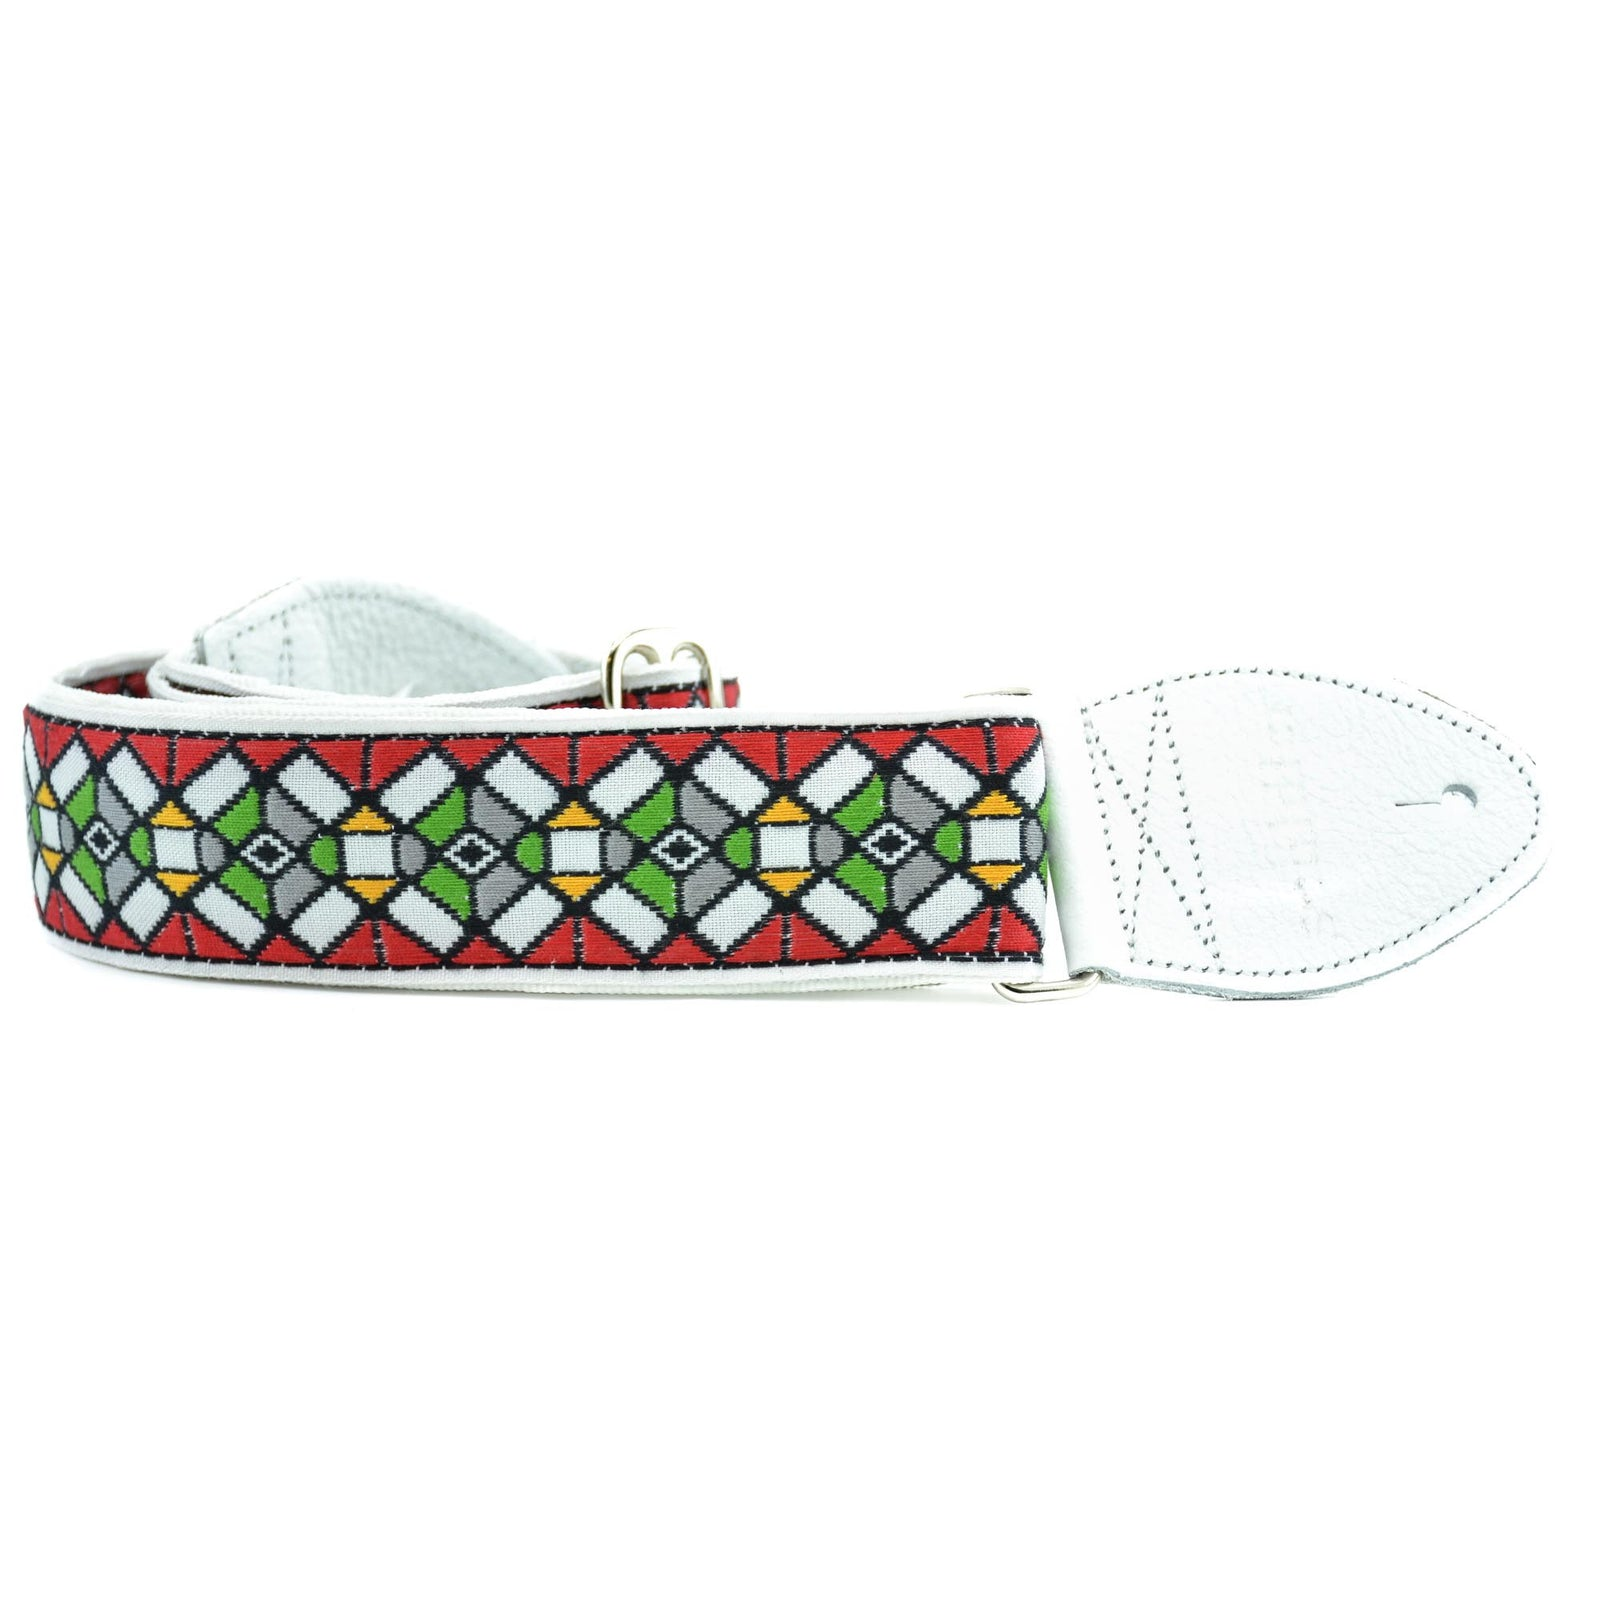 Souldier Stained Glass Strap - Red